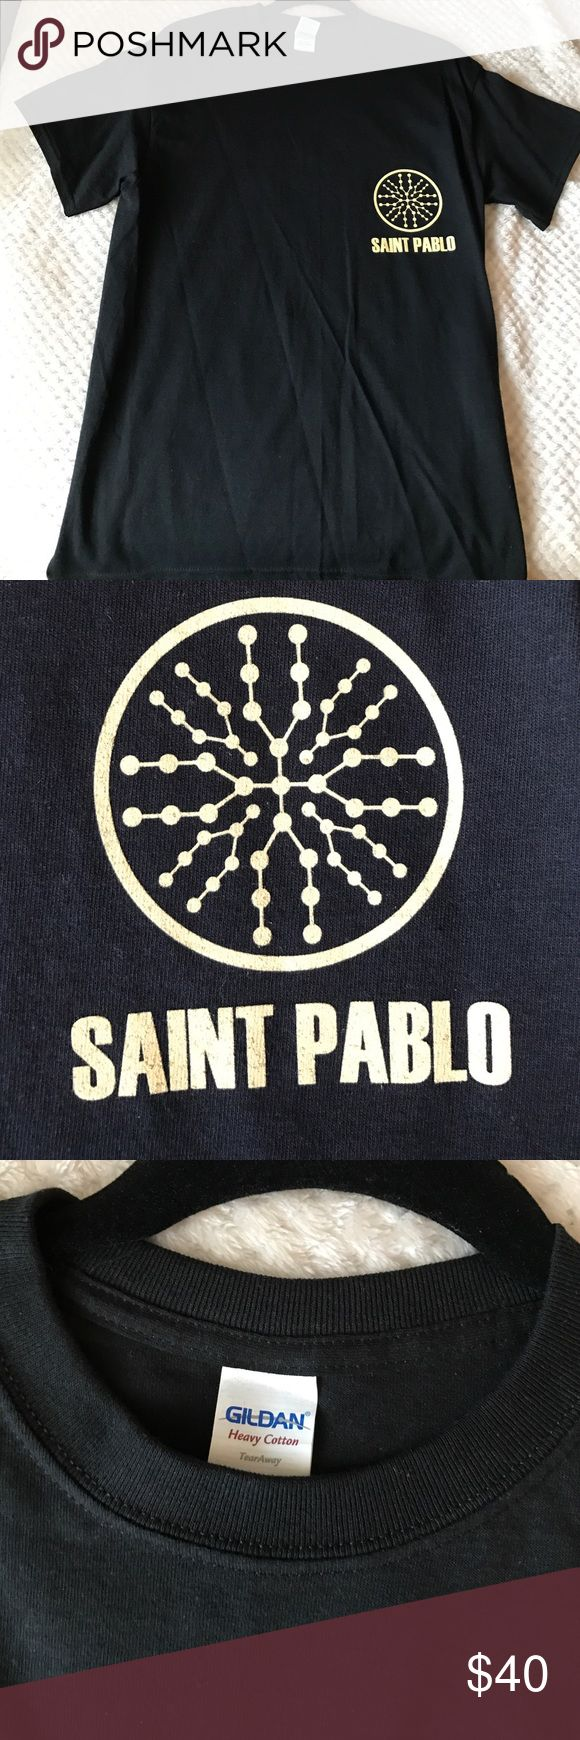 YEEZY Kanye West SAINT PABLO merch NEW. M. NEW never worn SAINT PABLO TOUR merch t shirt in size M. These all sold out instantly during every show. Original receipt and be provided for proof of authenticity. 100% Authentic guaranteed or 2x your money back. I can also provide photo of my tickets for proof that I went to show at MSG. Great gift, highly desired for all Kanye fans and younger age group who are into sneakers. Yeezy Shirts